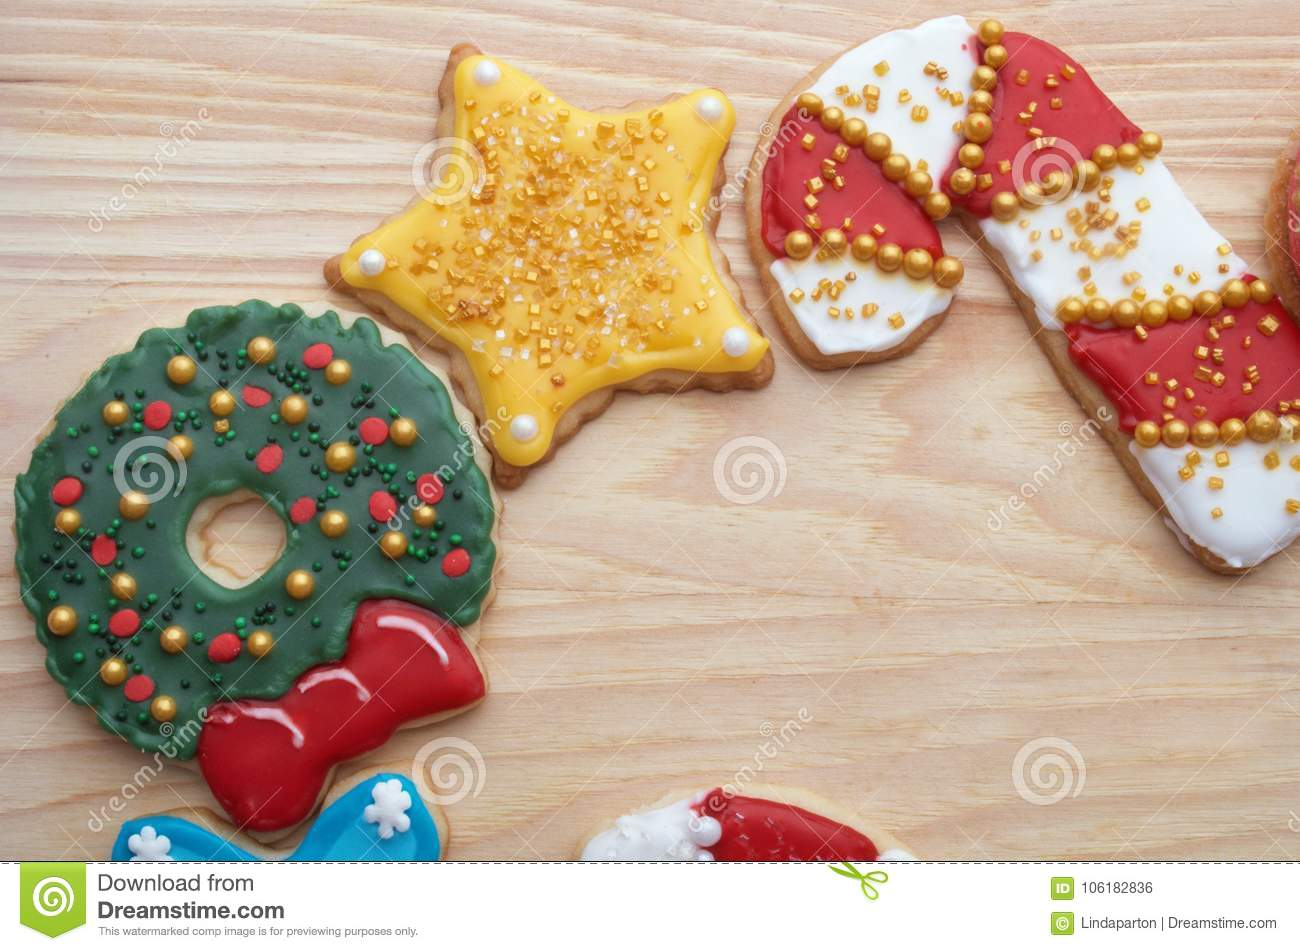 Decorated Christmas Cut Out Cookies On Natural Wood Grain Stock